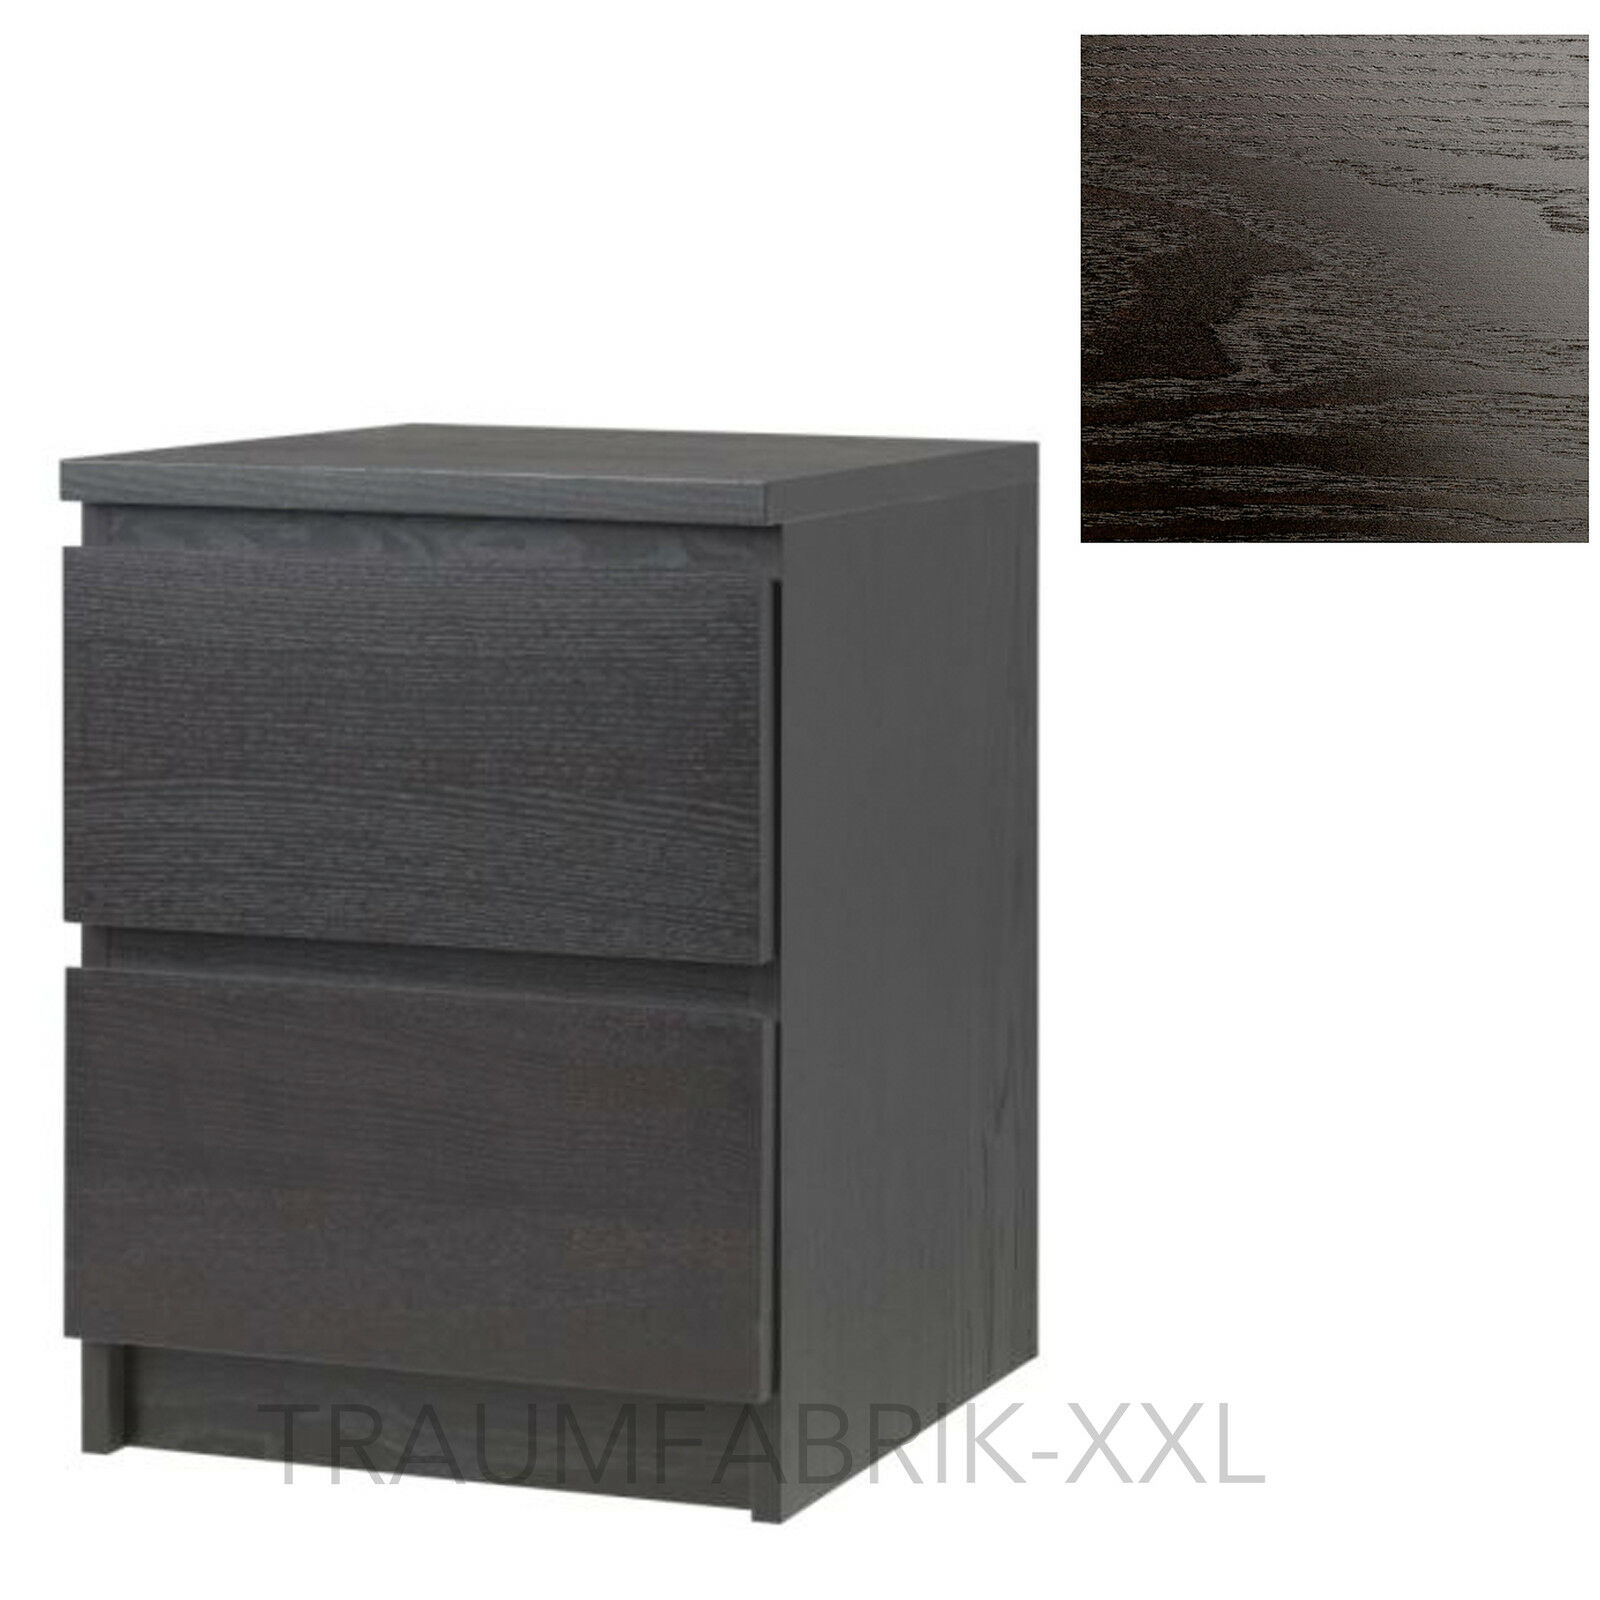 ikea kommode schrank mit 2 schubladen schwarz braun. Black Bedroom Furniture Sets. Home Design Ideas